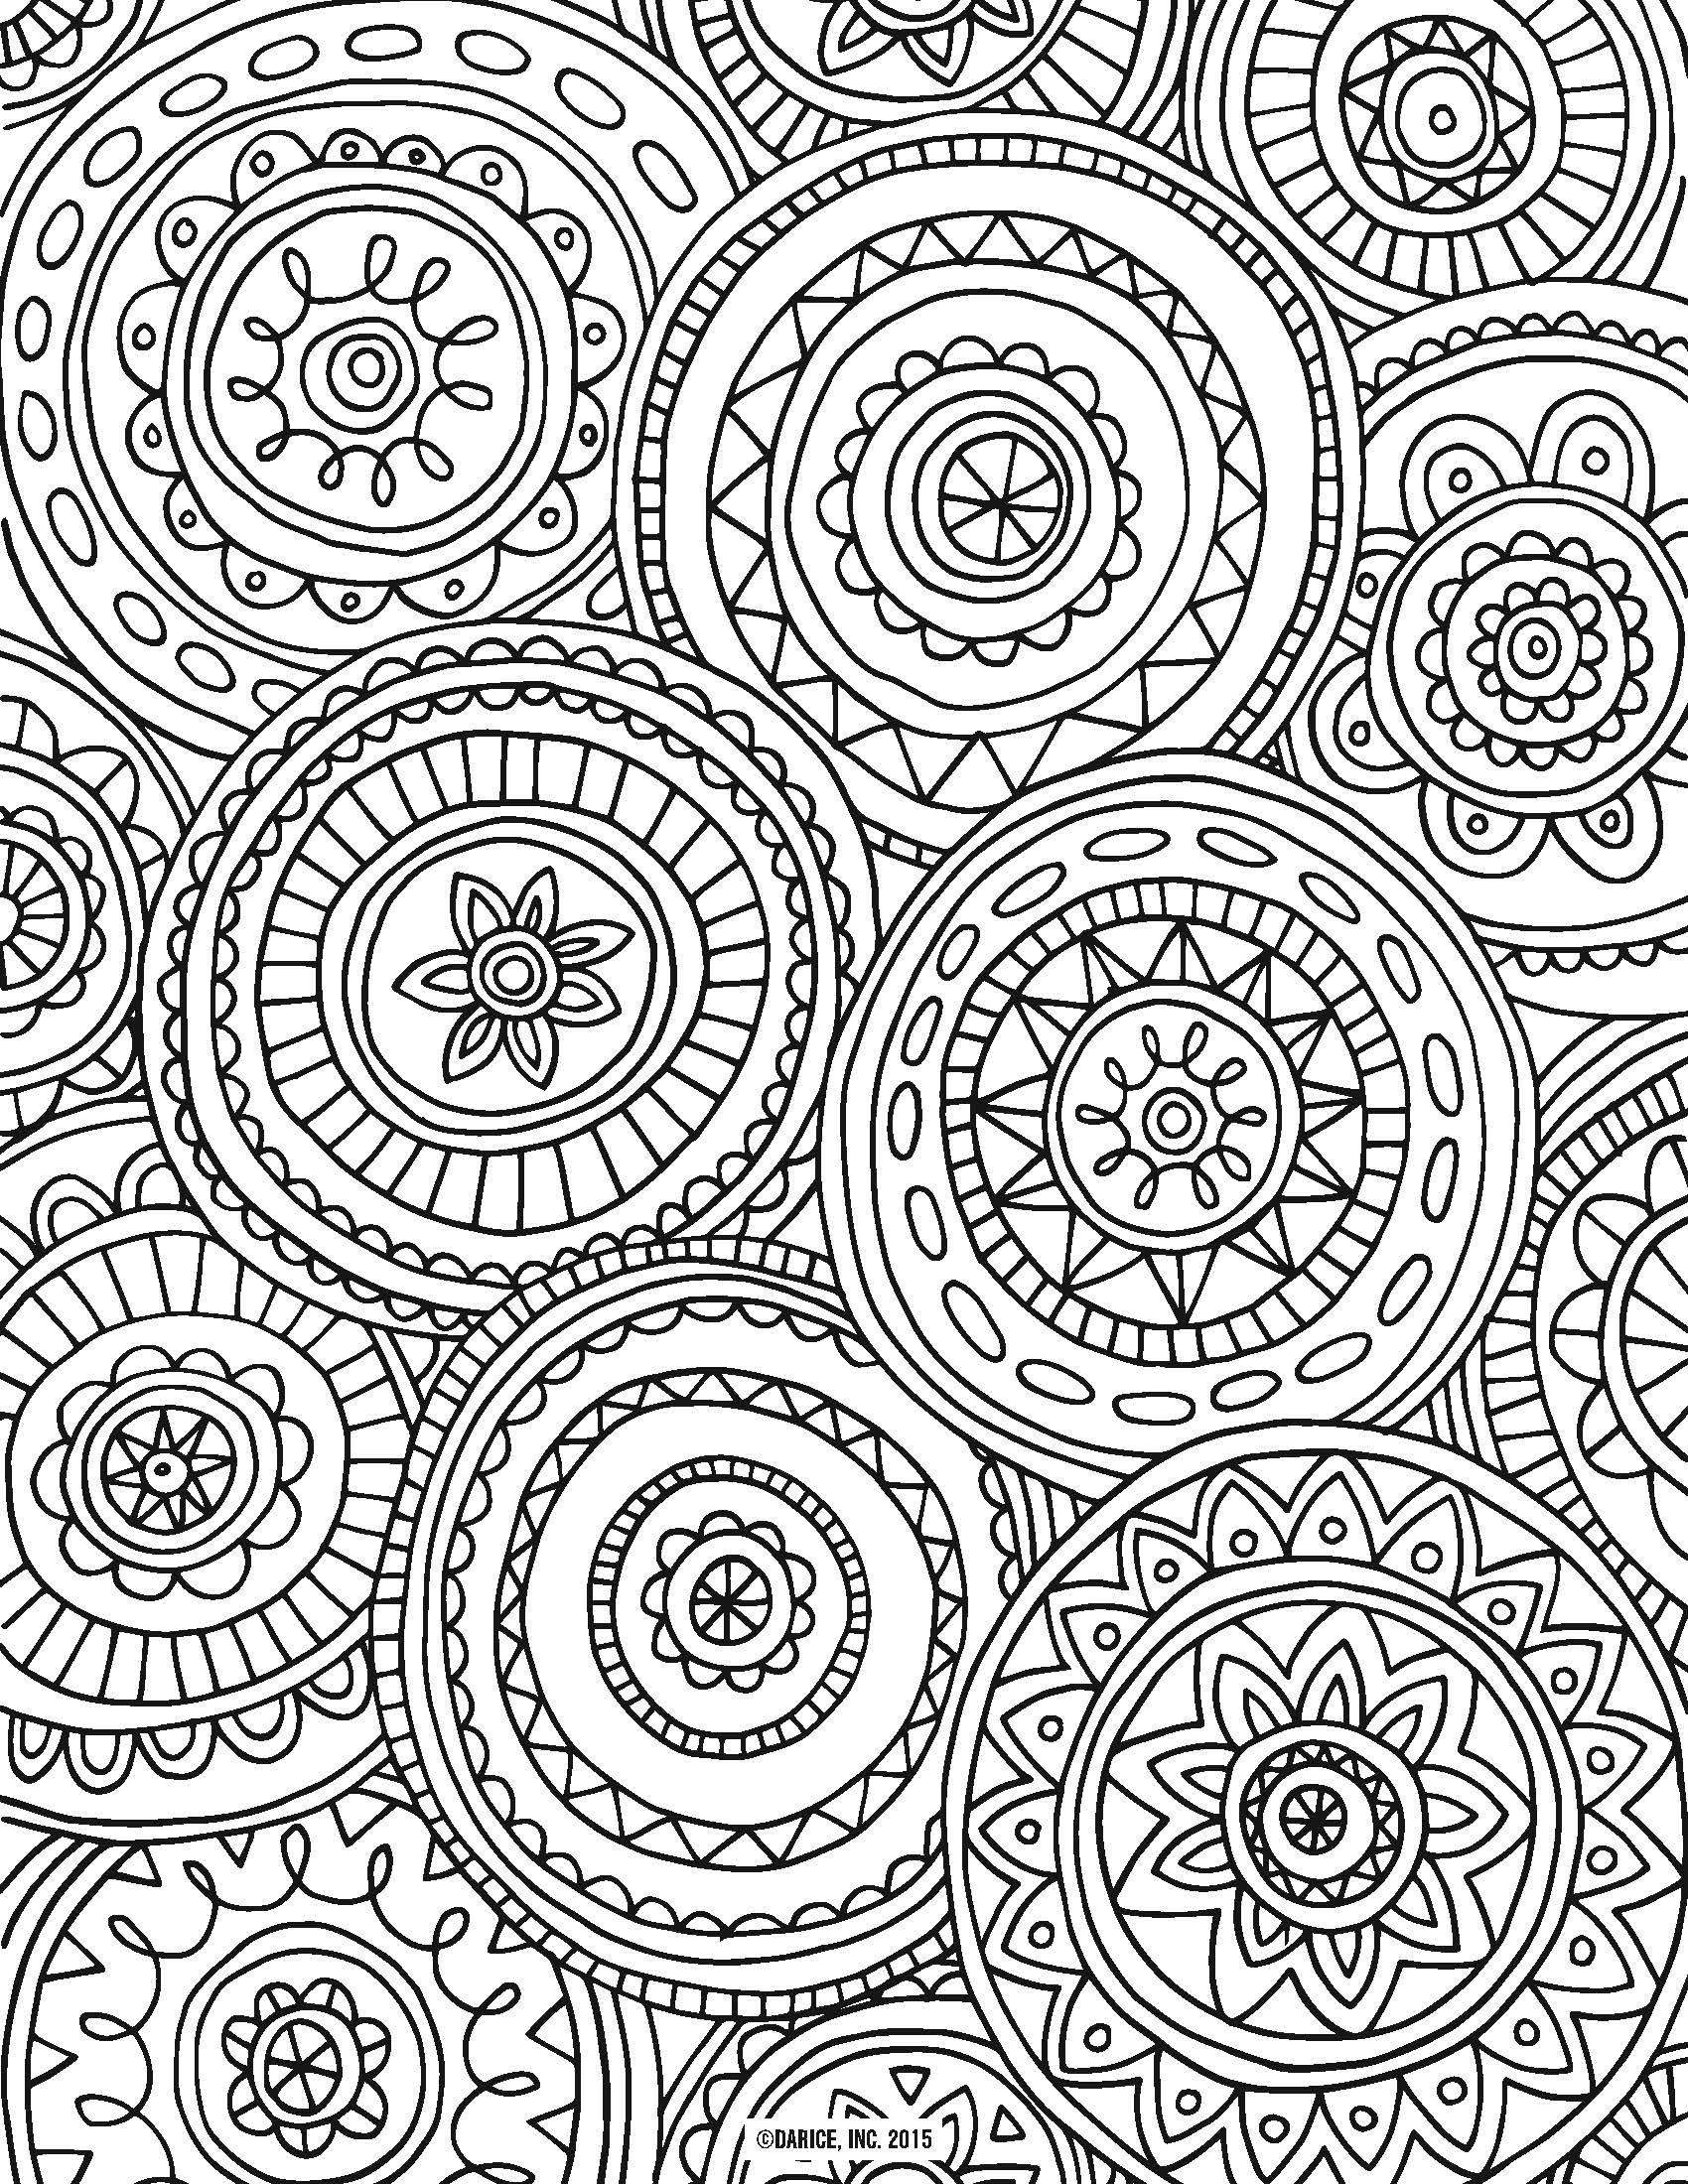 Coloring Pages For Adults Pdf Adult Coloring Pages Free Pdf Inspirational Collection Wolf Coloring Birijus Com